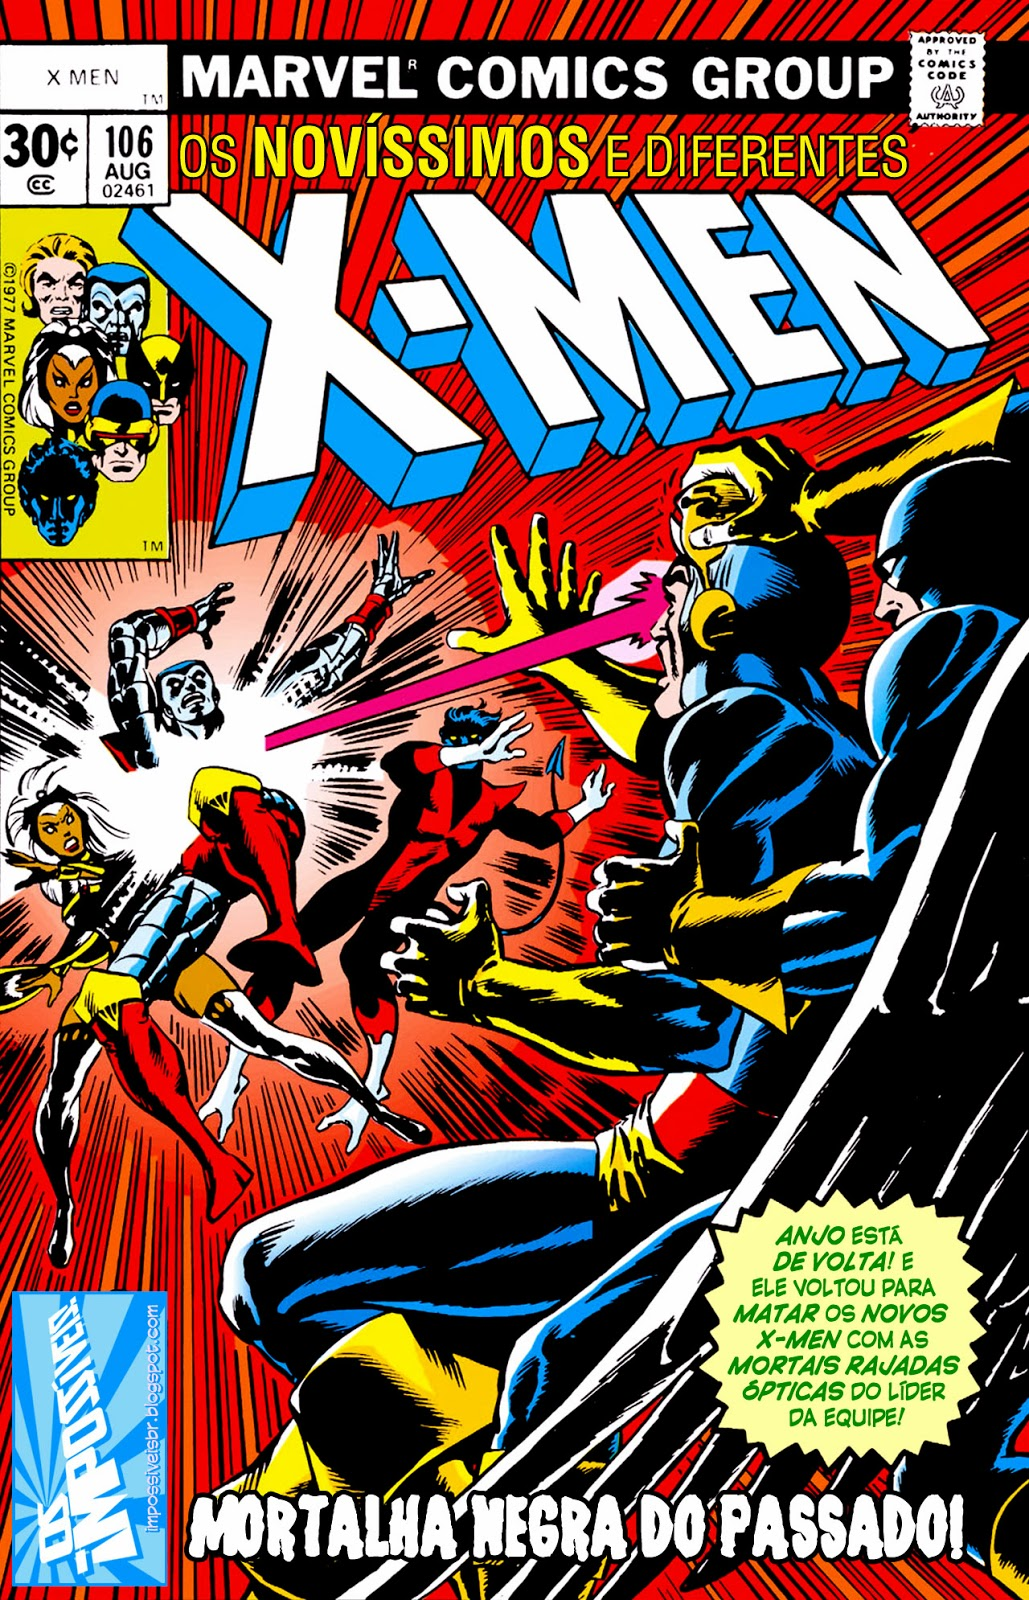 http://www.mediafire.com/download/9z20r64ioolqkry/Os.Fabulosos.X-Men.(X-Men.V1).106.HQBR.22OUT13.Os.Impossiveis.cbr